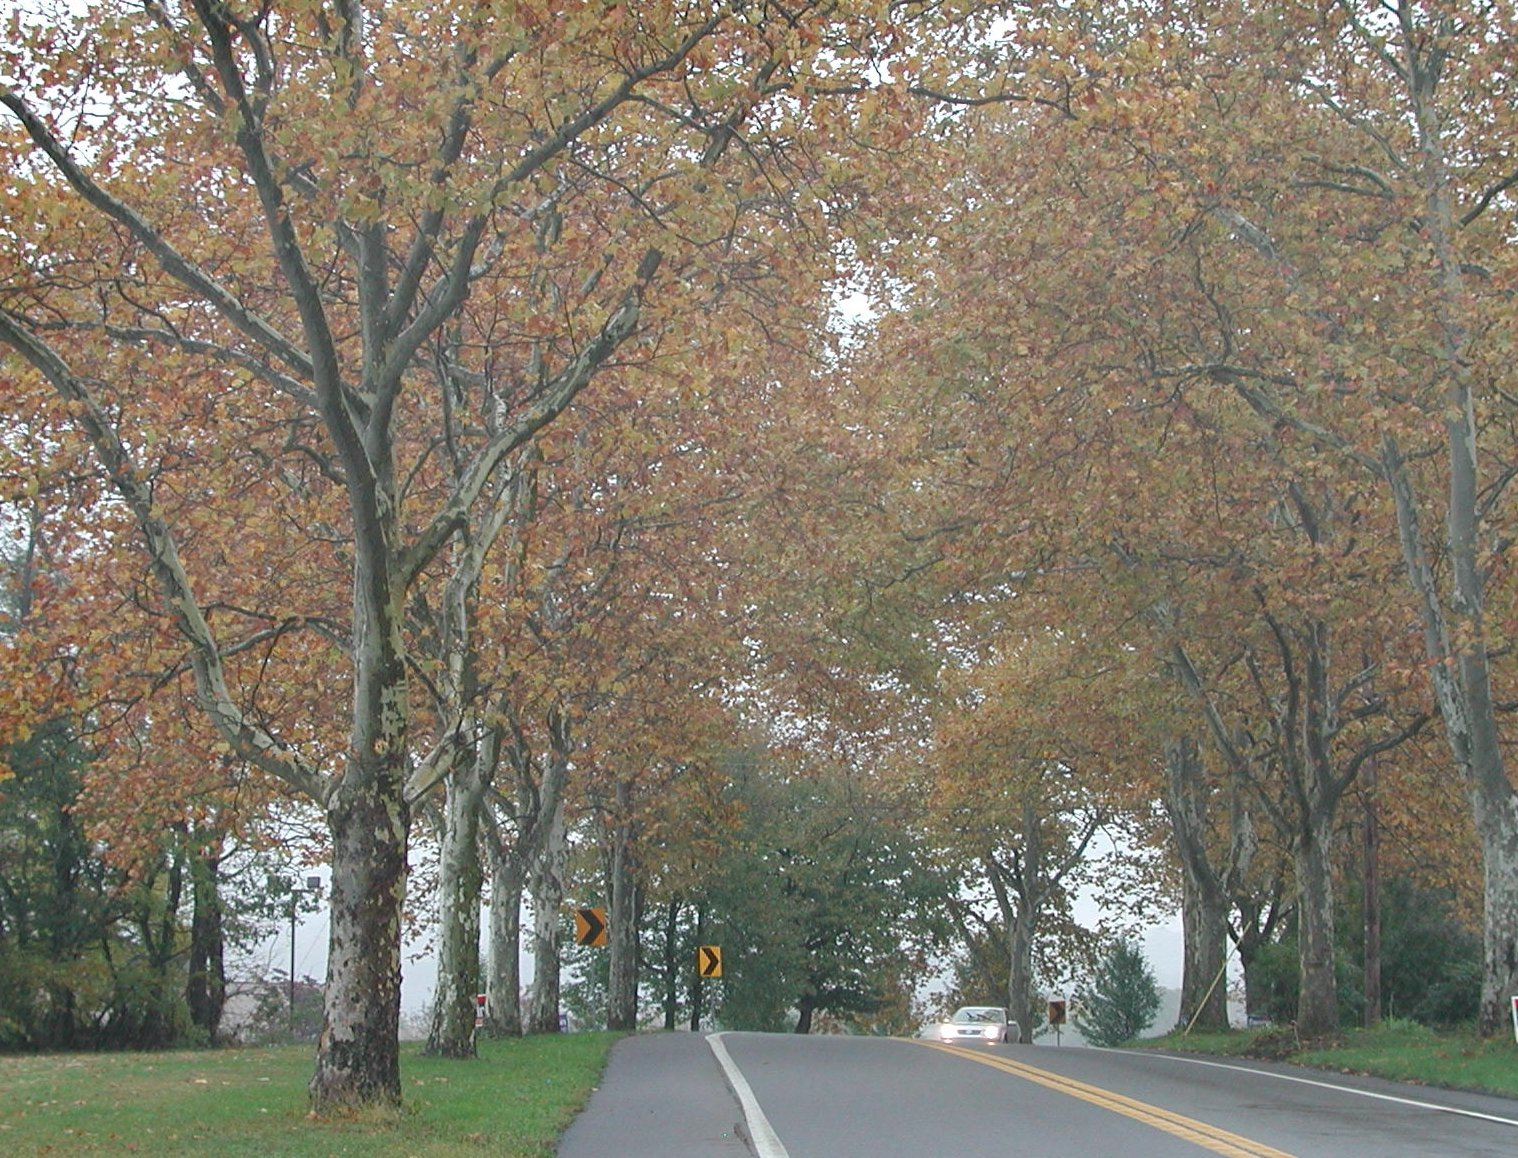 Sycamore Allee in the fall.